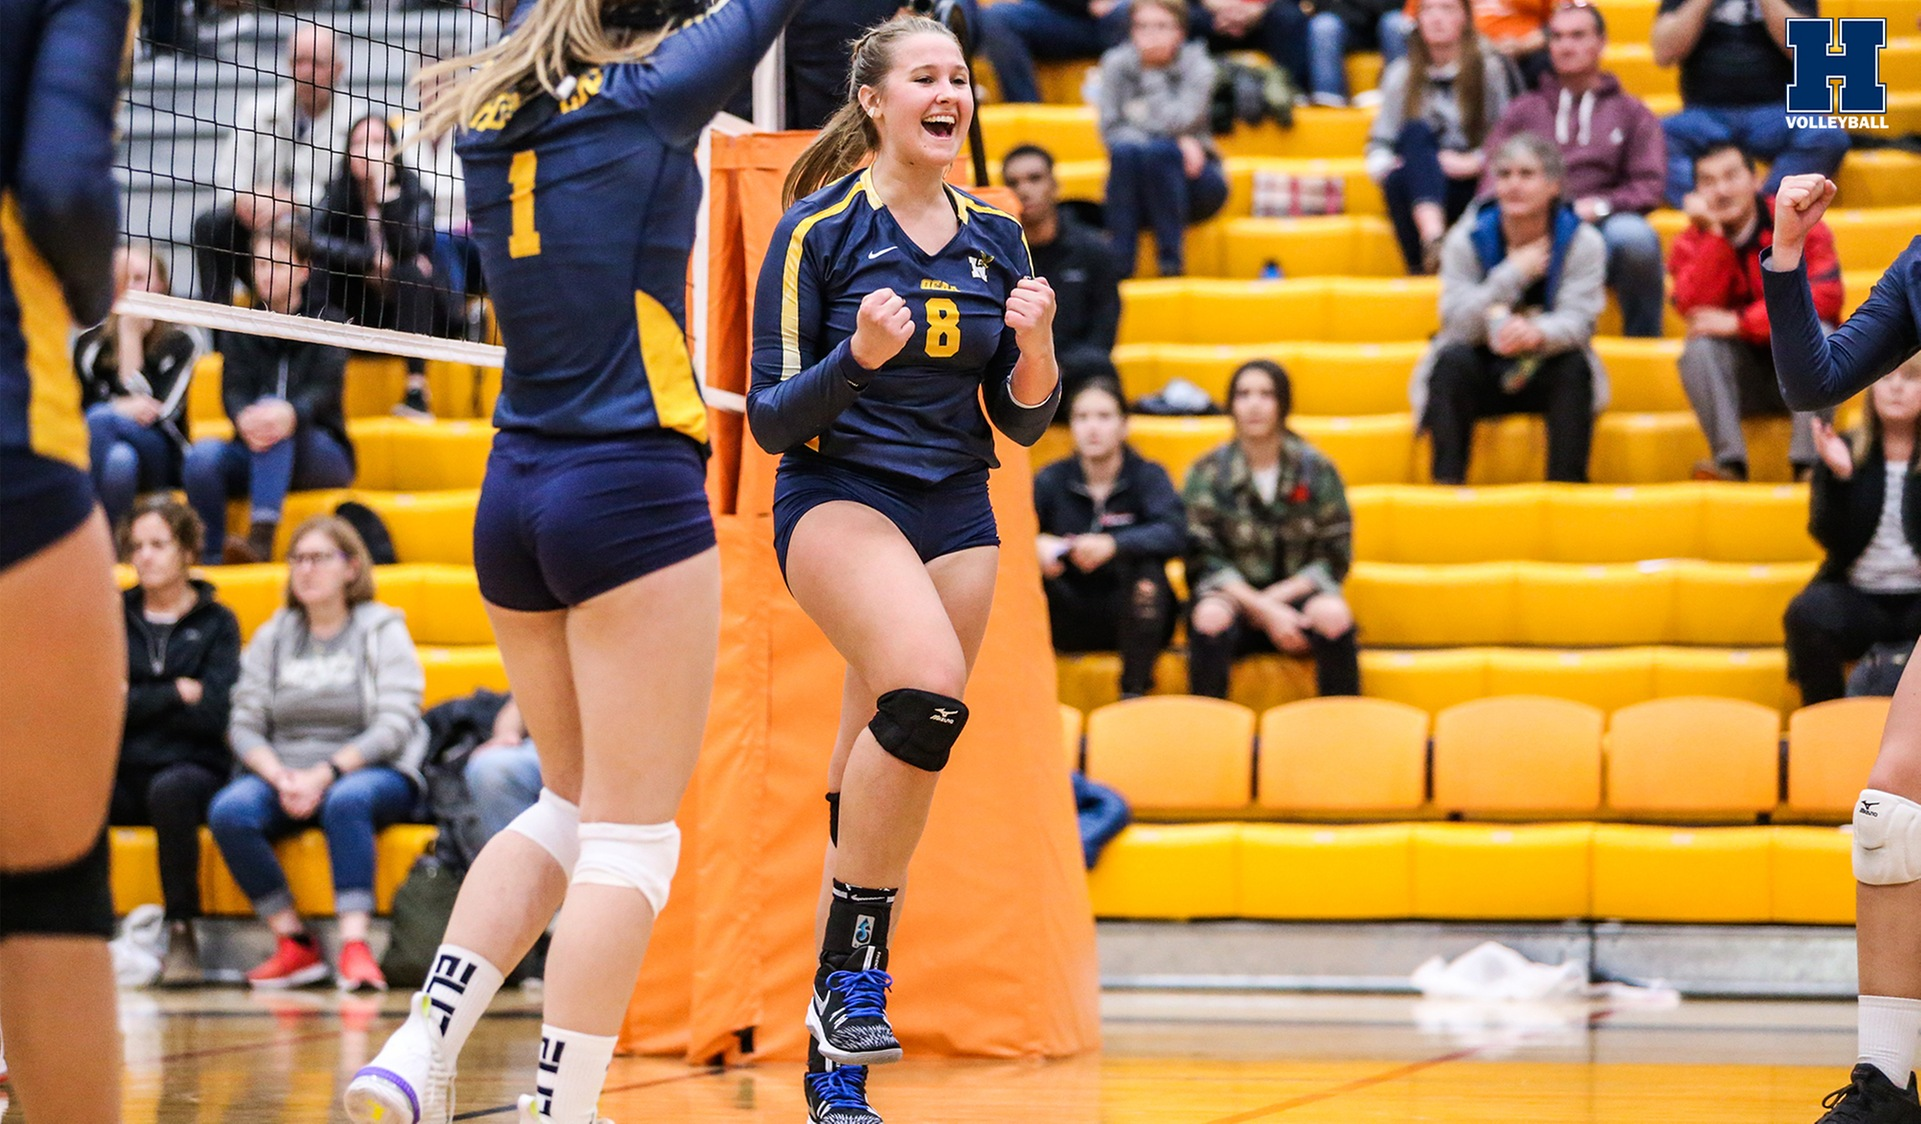 Women's Volleyball Beats Sheridan, 3-1